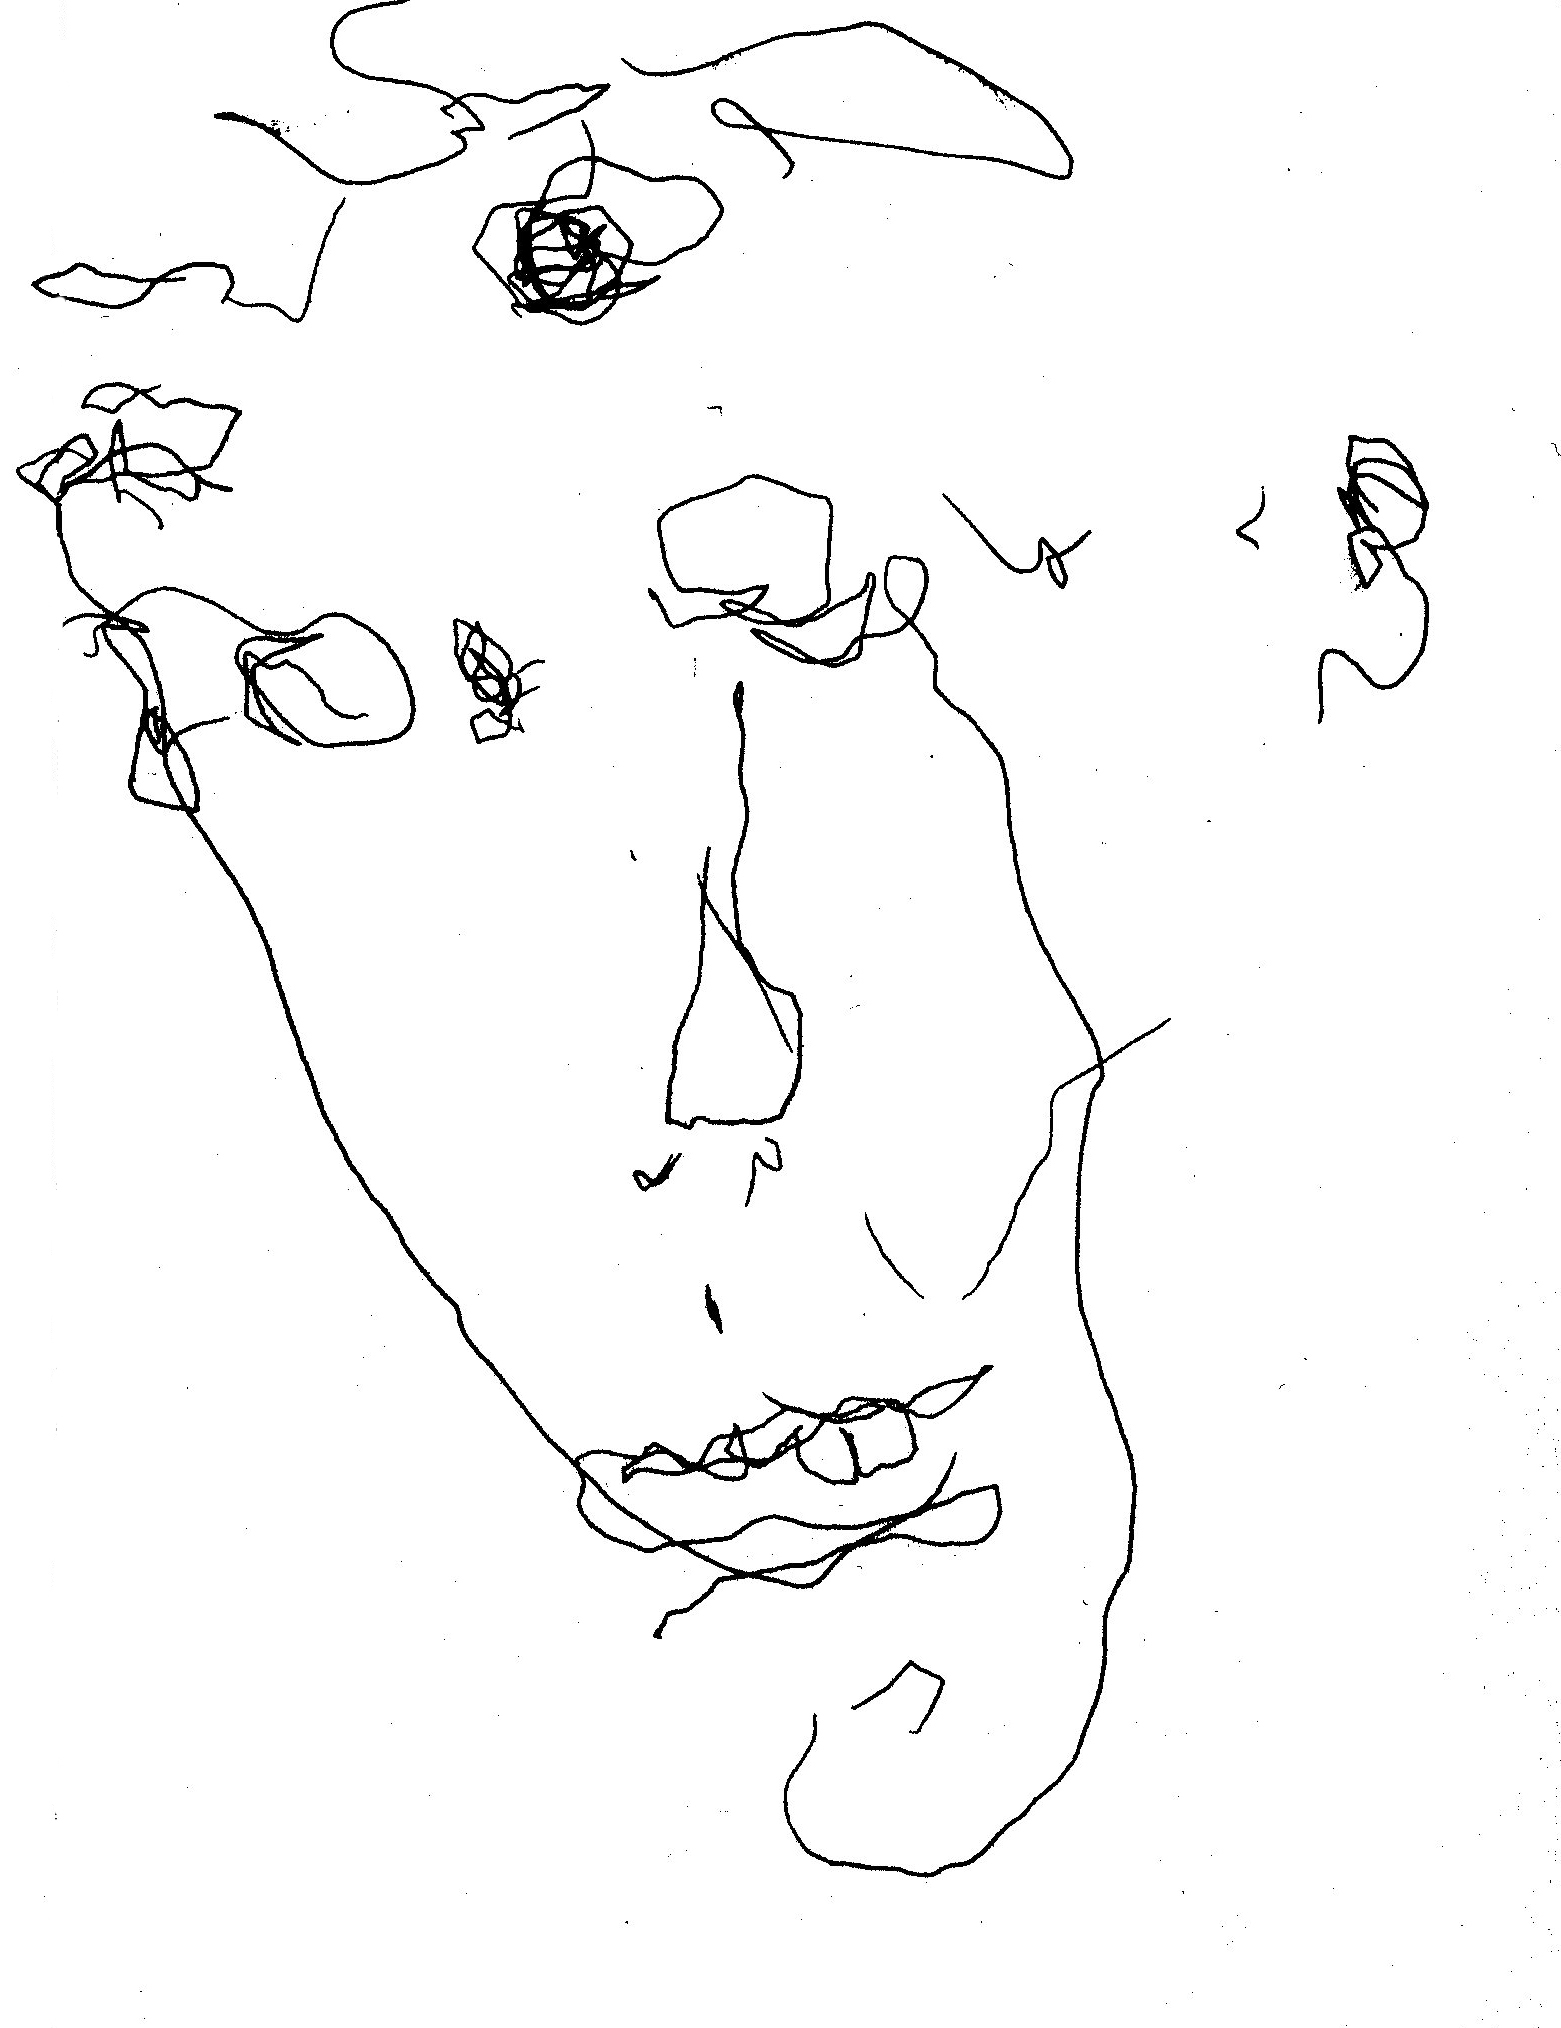 1561x2028 Moon Face Self Portrait, Pen Drawing In The Dark, By William Eaton